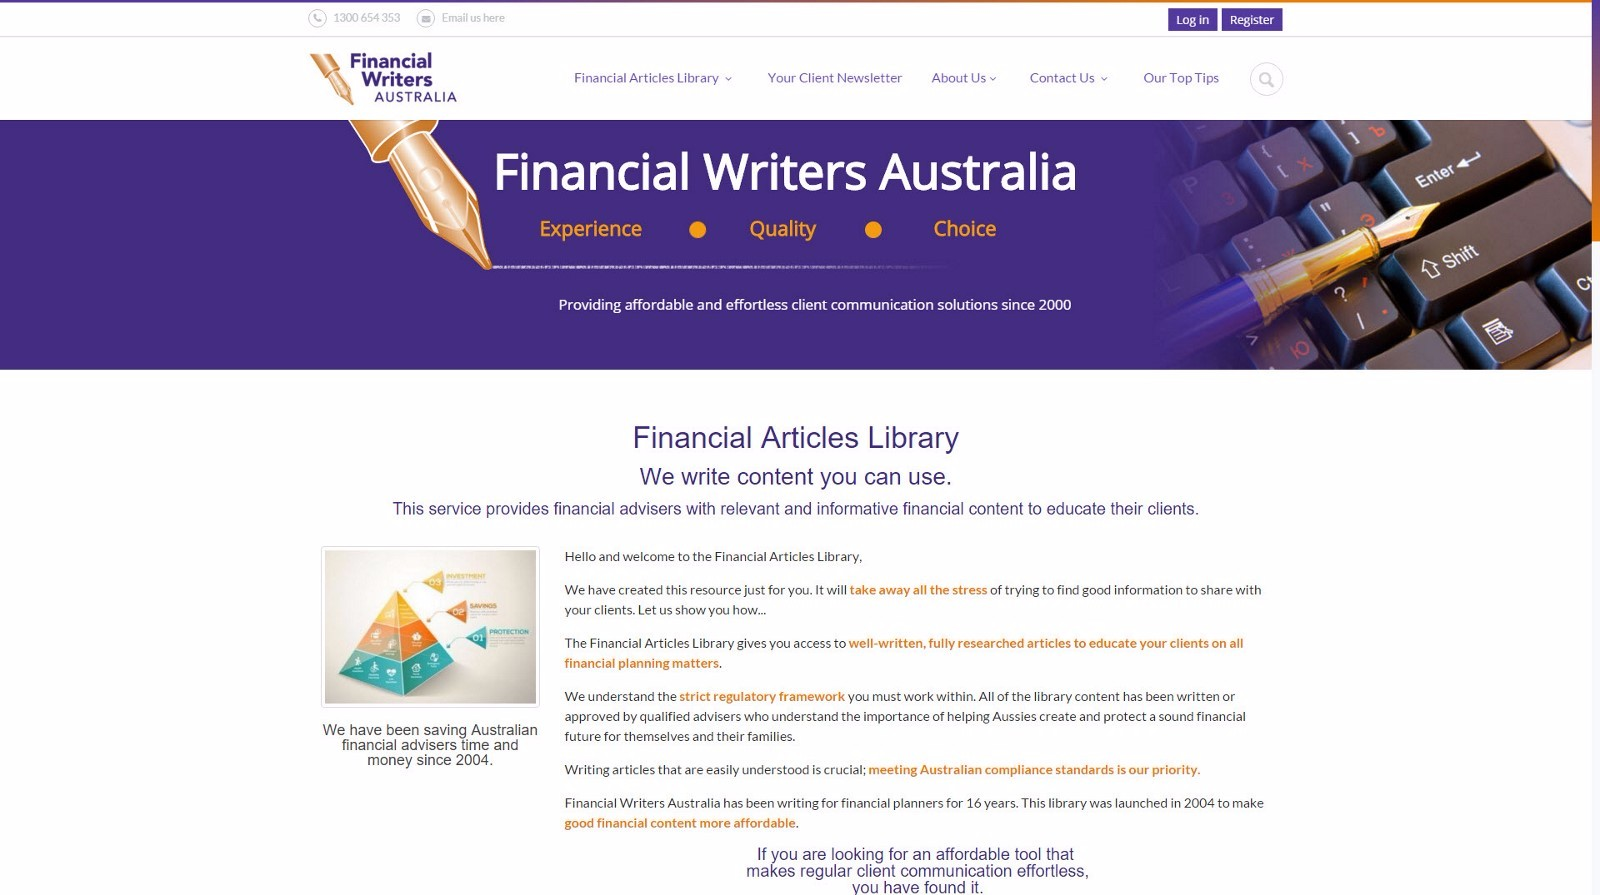 financialwrite1 Financial Writers Australia